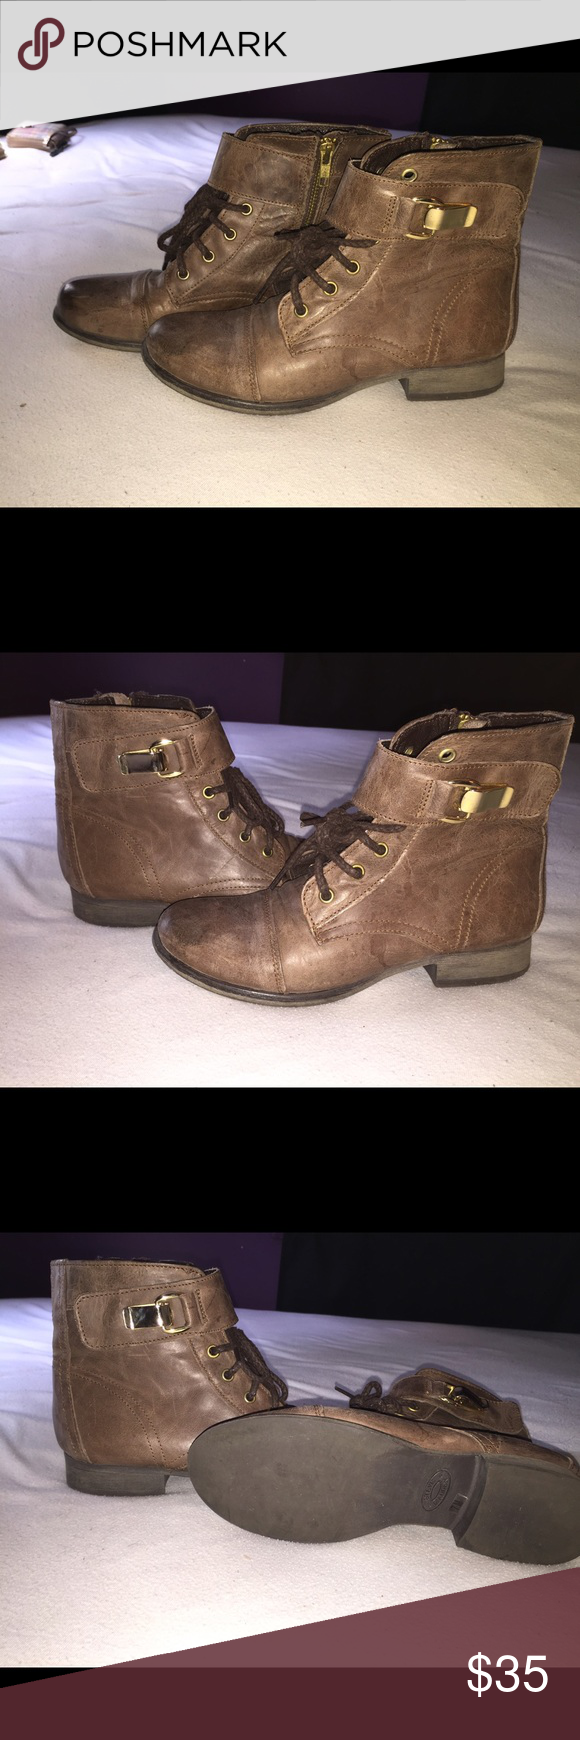 Cognac Steve Madden booties Super cute leather cognac Steve Madden booties size 7. Like new, Worn once Steve Madden Shoes Ankle Boots & Booties